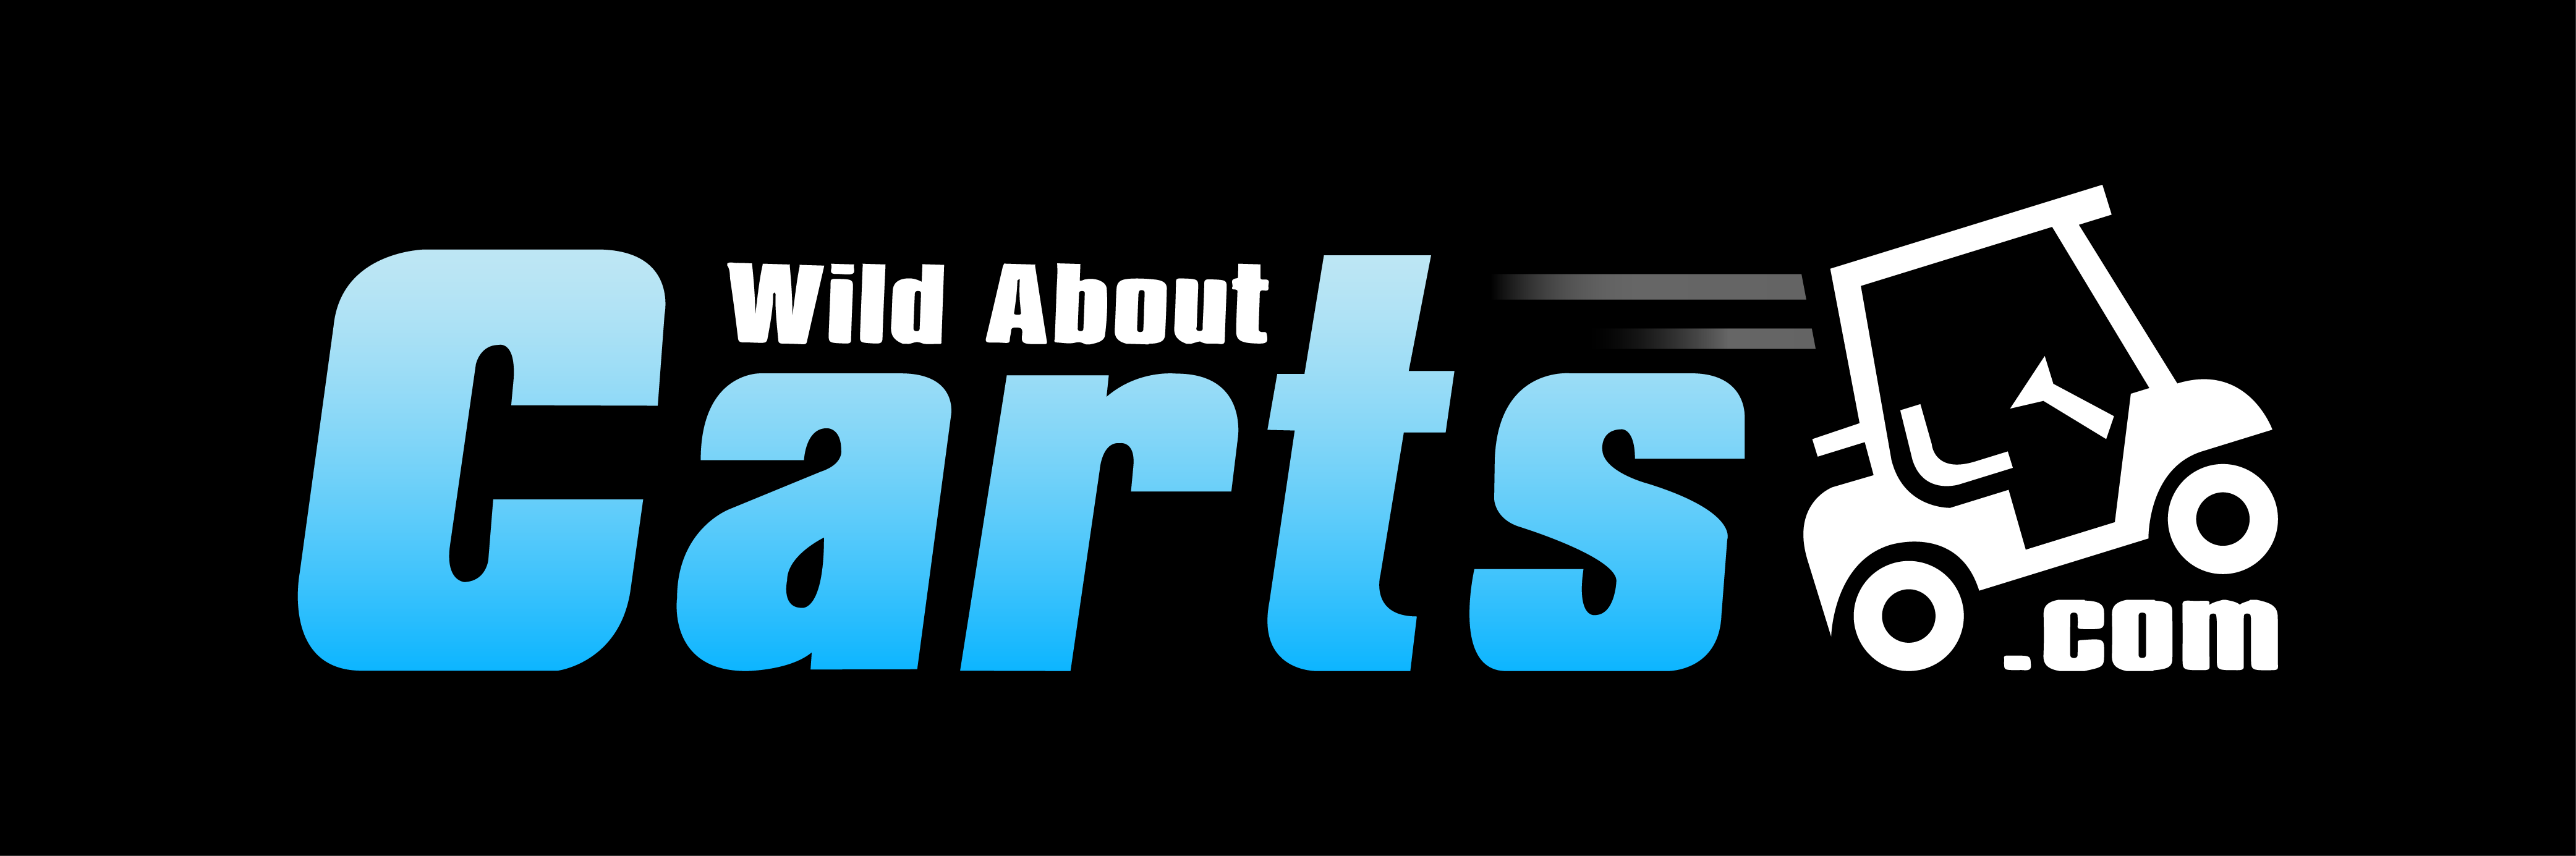 wildaboutcarts-1-.png